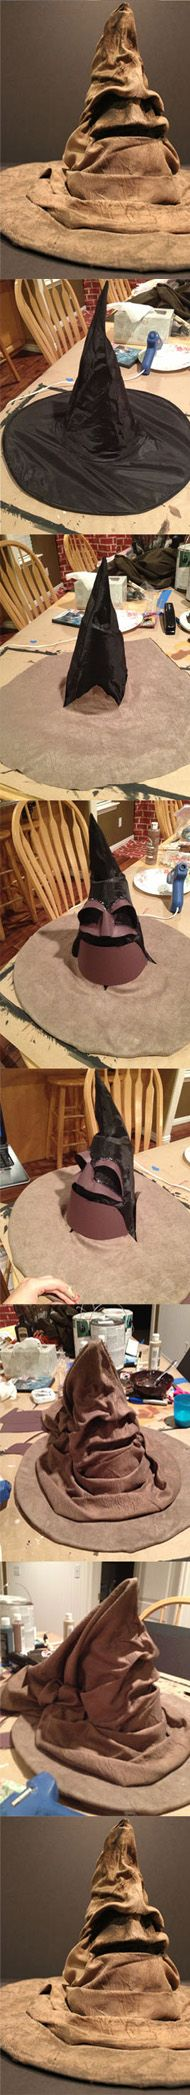 DIY Harry Potter Sorting Hat. A great halloween costumes idea for kids or for adults.